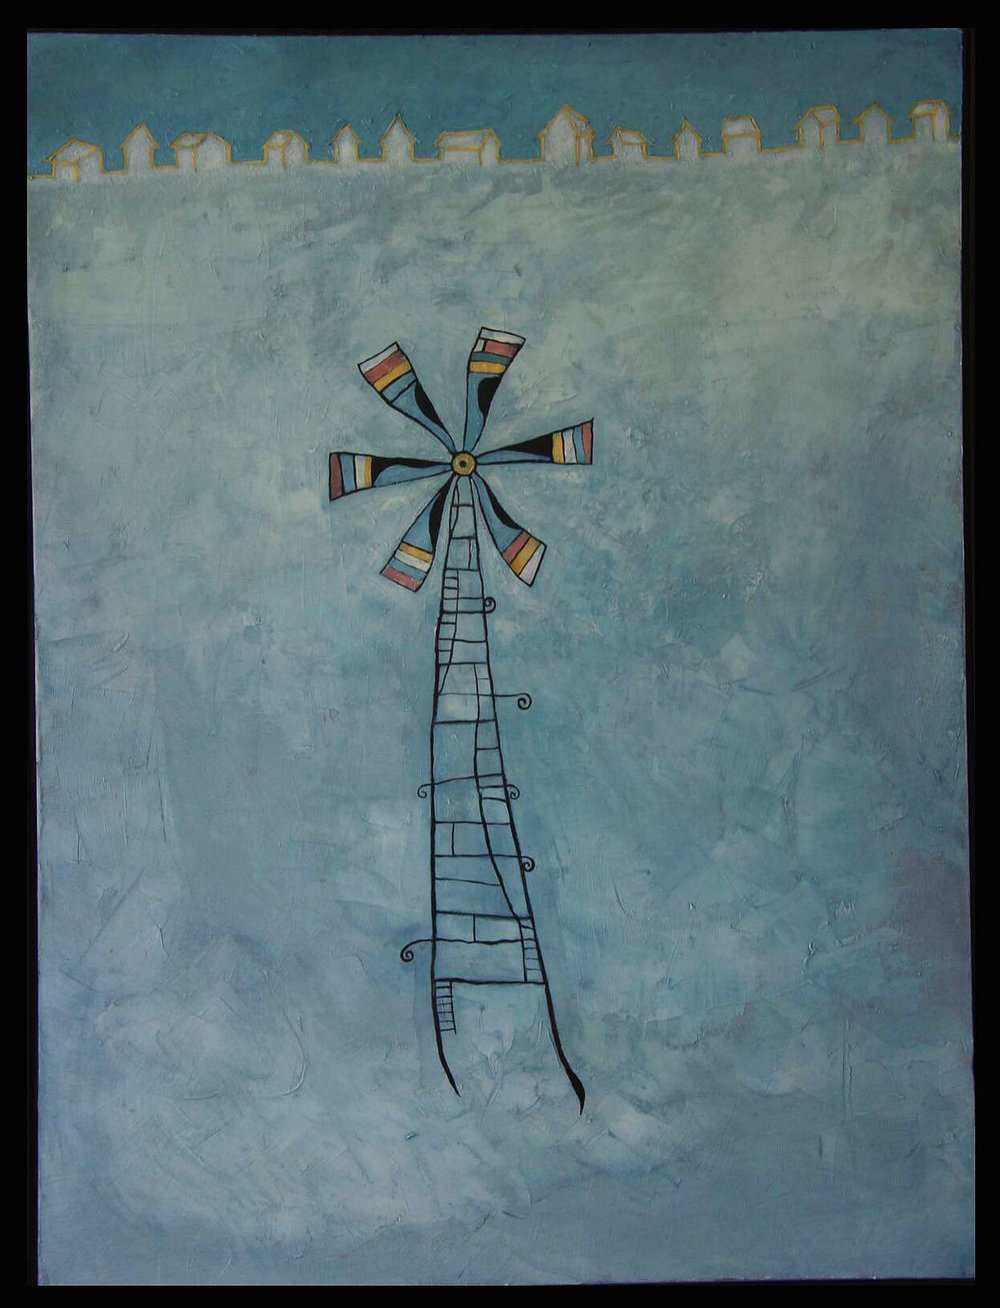 Windmill 1, Oil on Canvas, 40x30 in, 2015